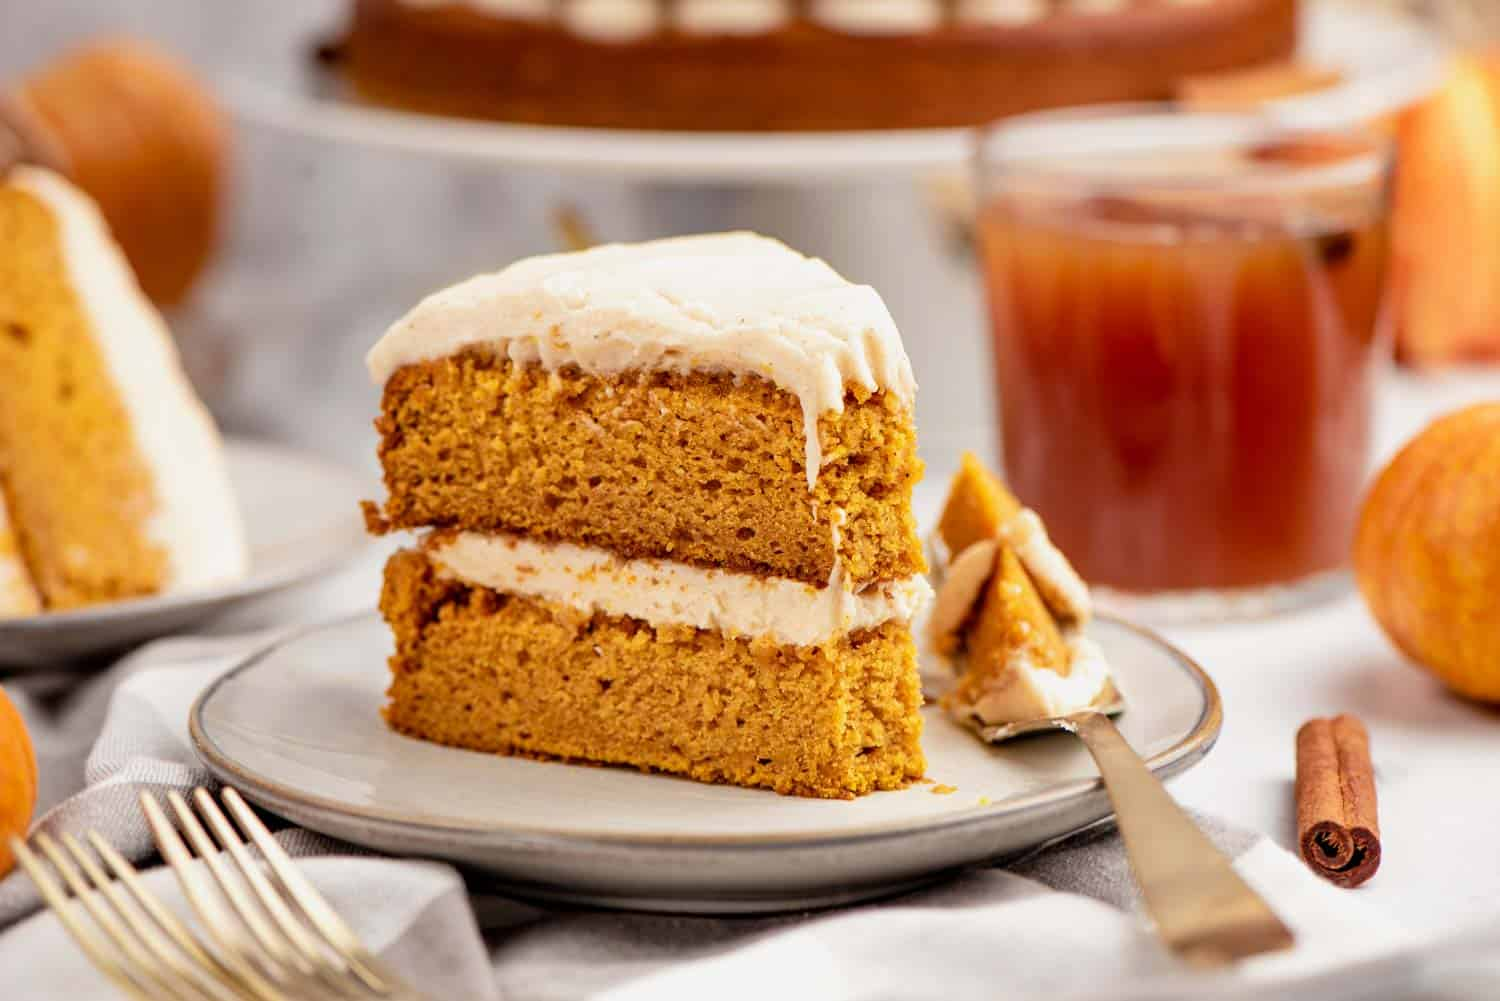 A slice of pumpkin cake on a plate with a fork